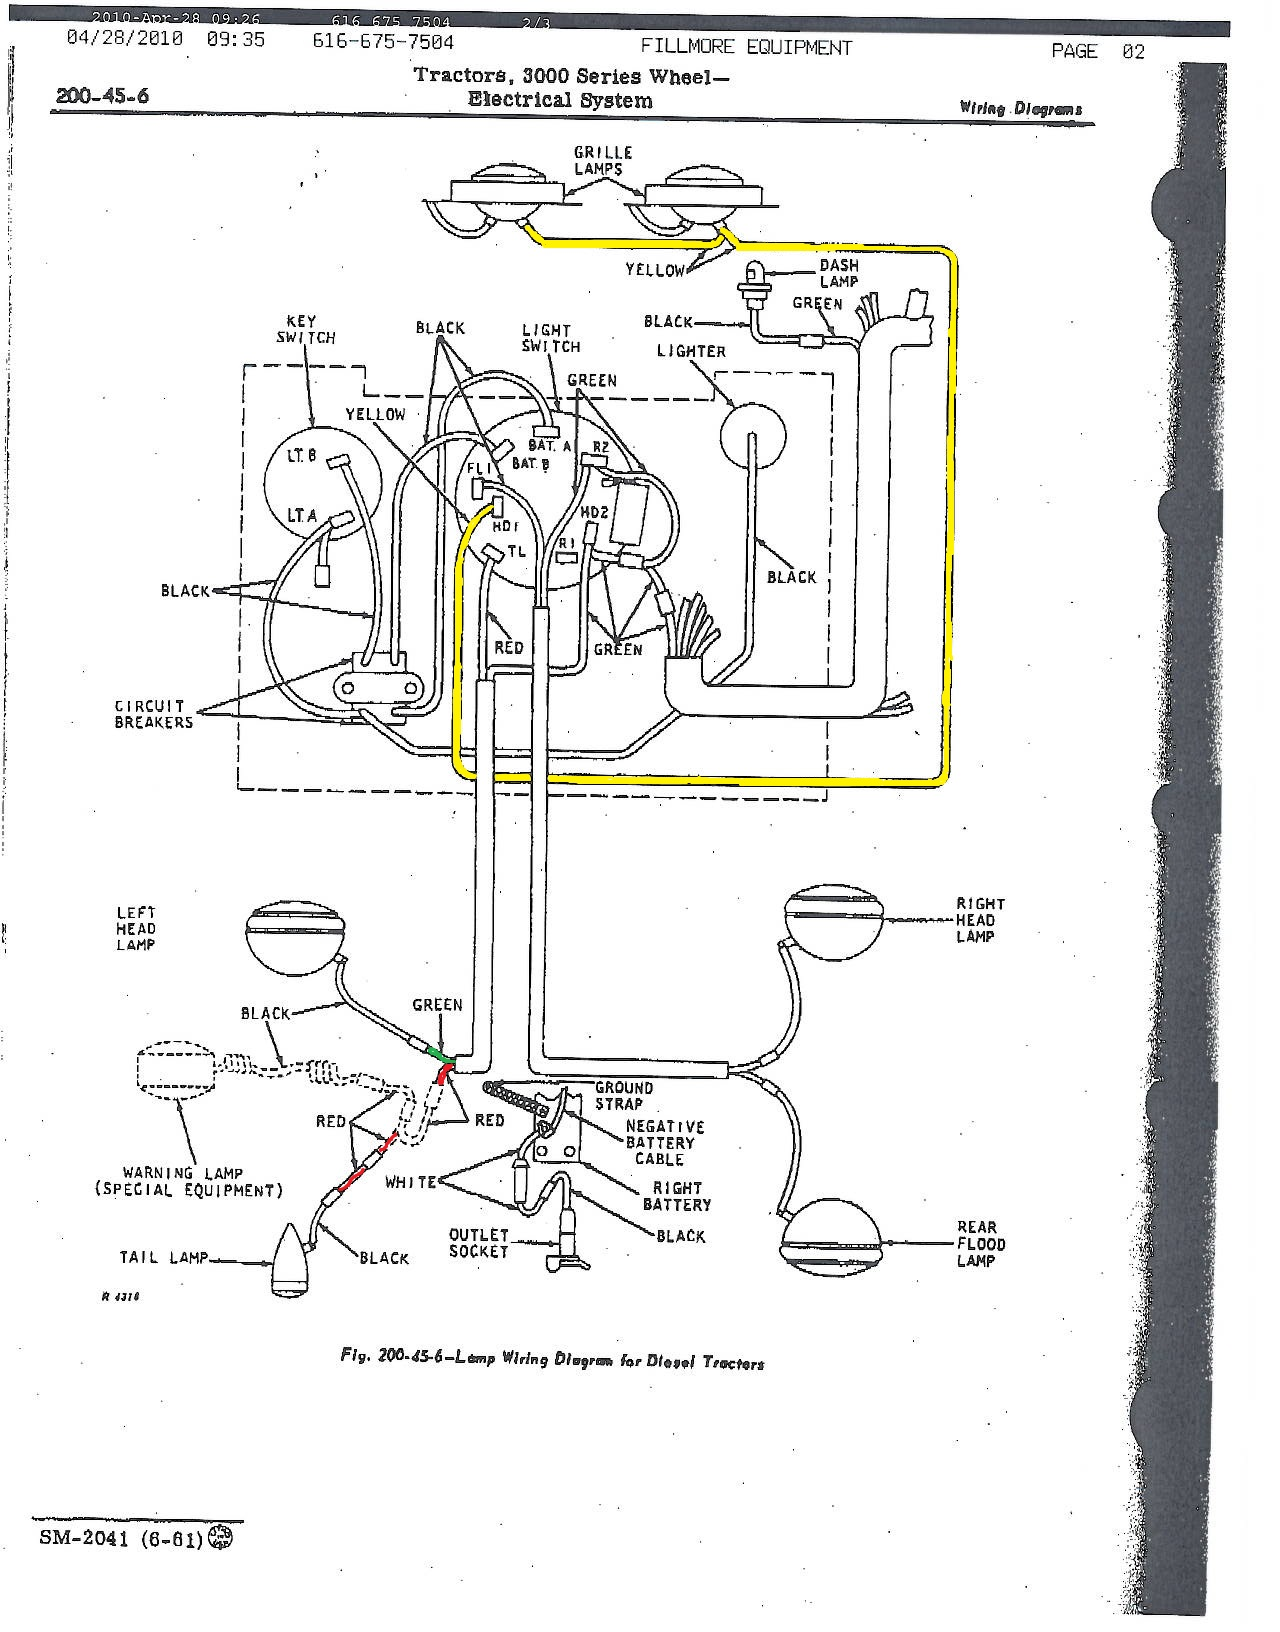 Jd 4430 Wiring Diagram Real 2520 John Deere 3010 30 Images Alternator 4440